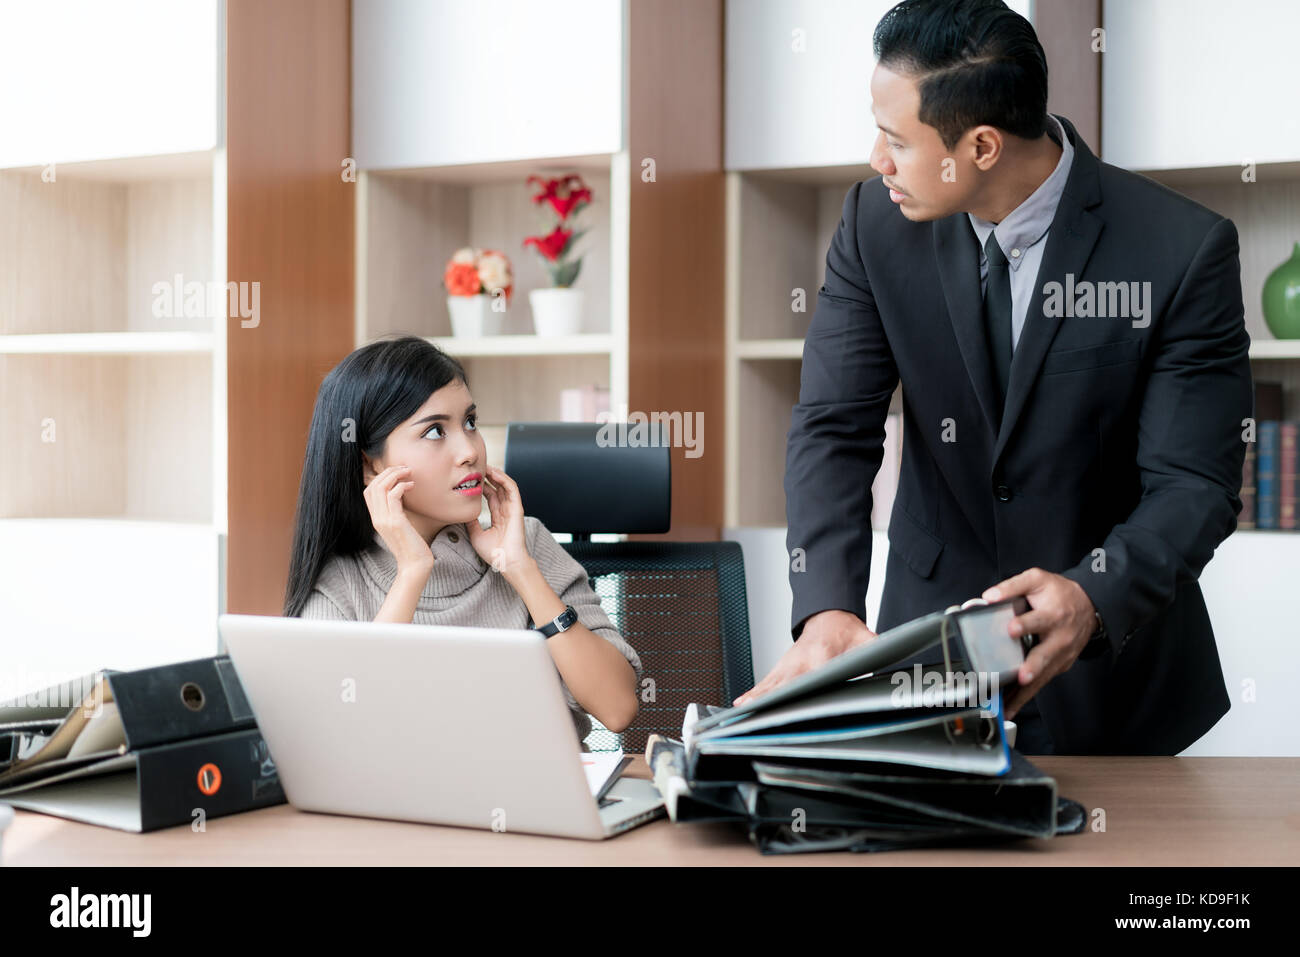 Anger businessman manager taking folders on his subordinate table. Businesswoman under stress due to excessive work. Stock Photo